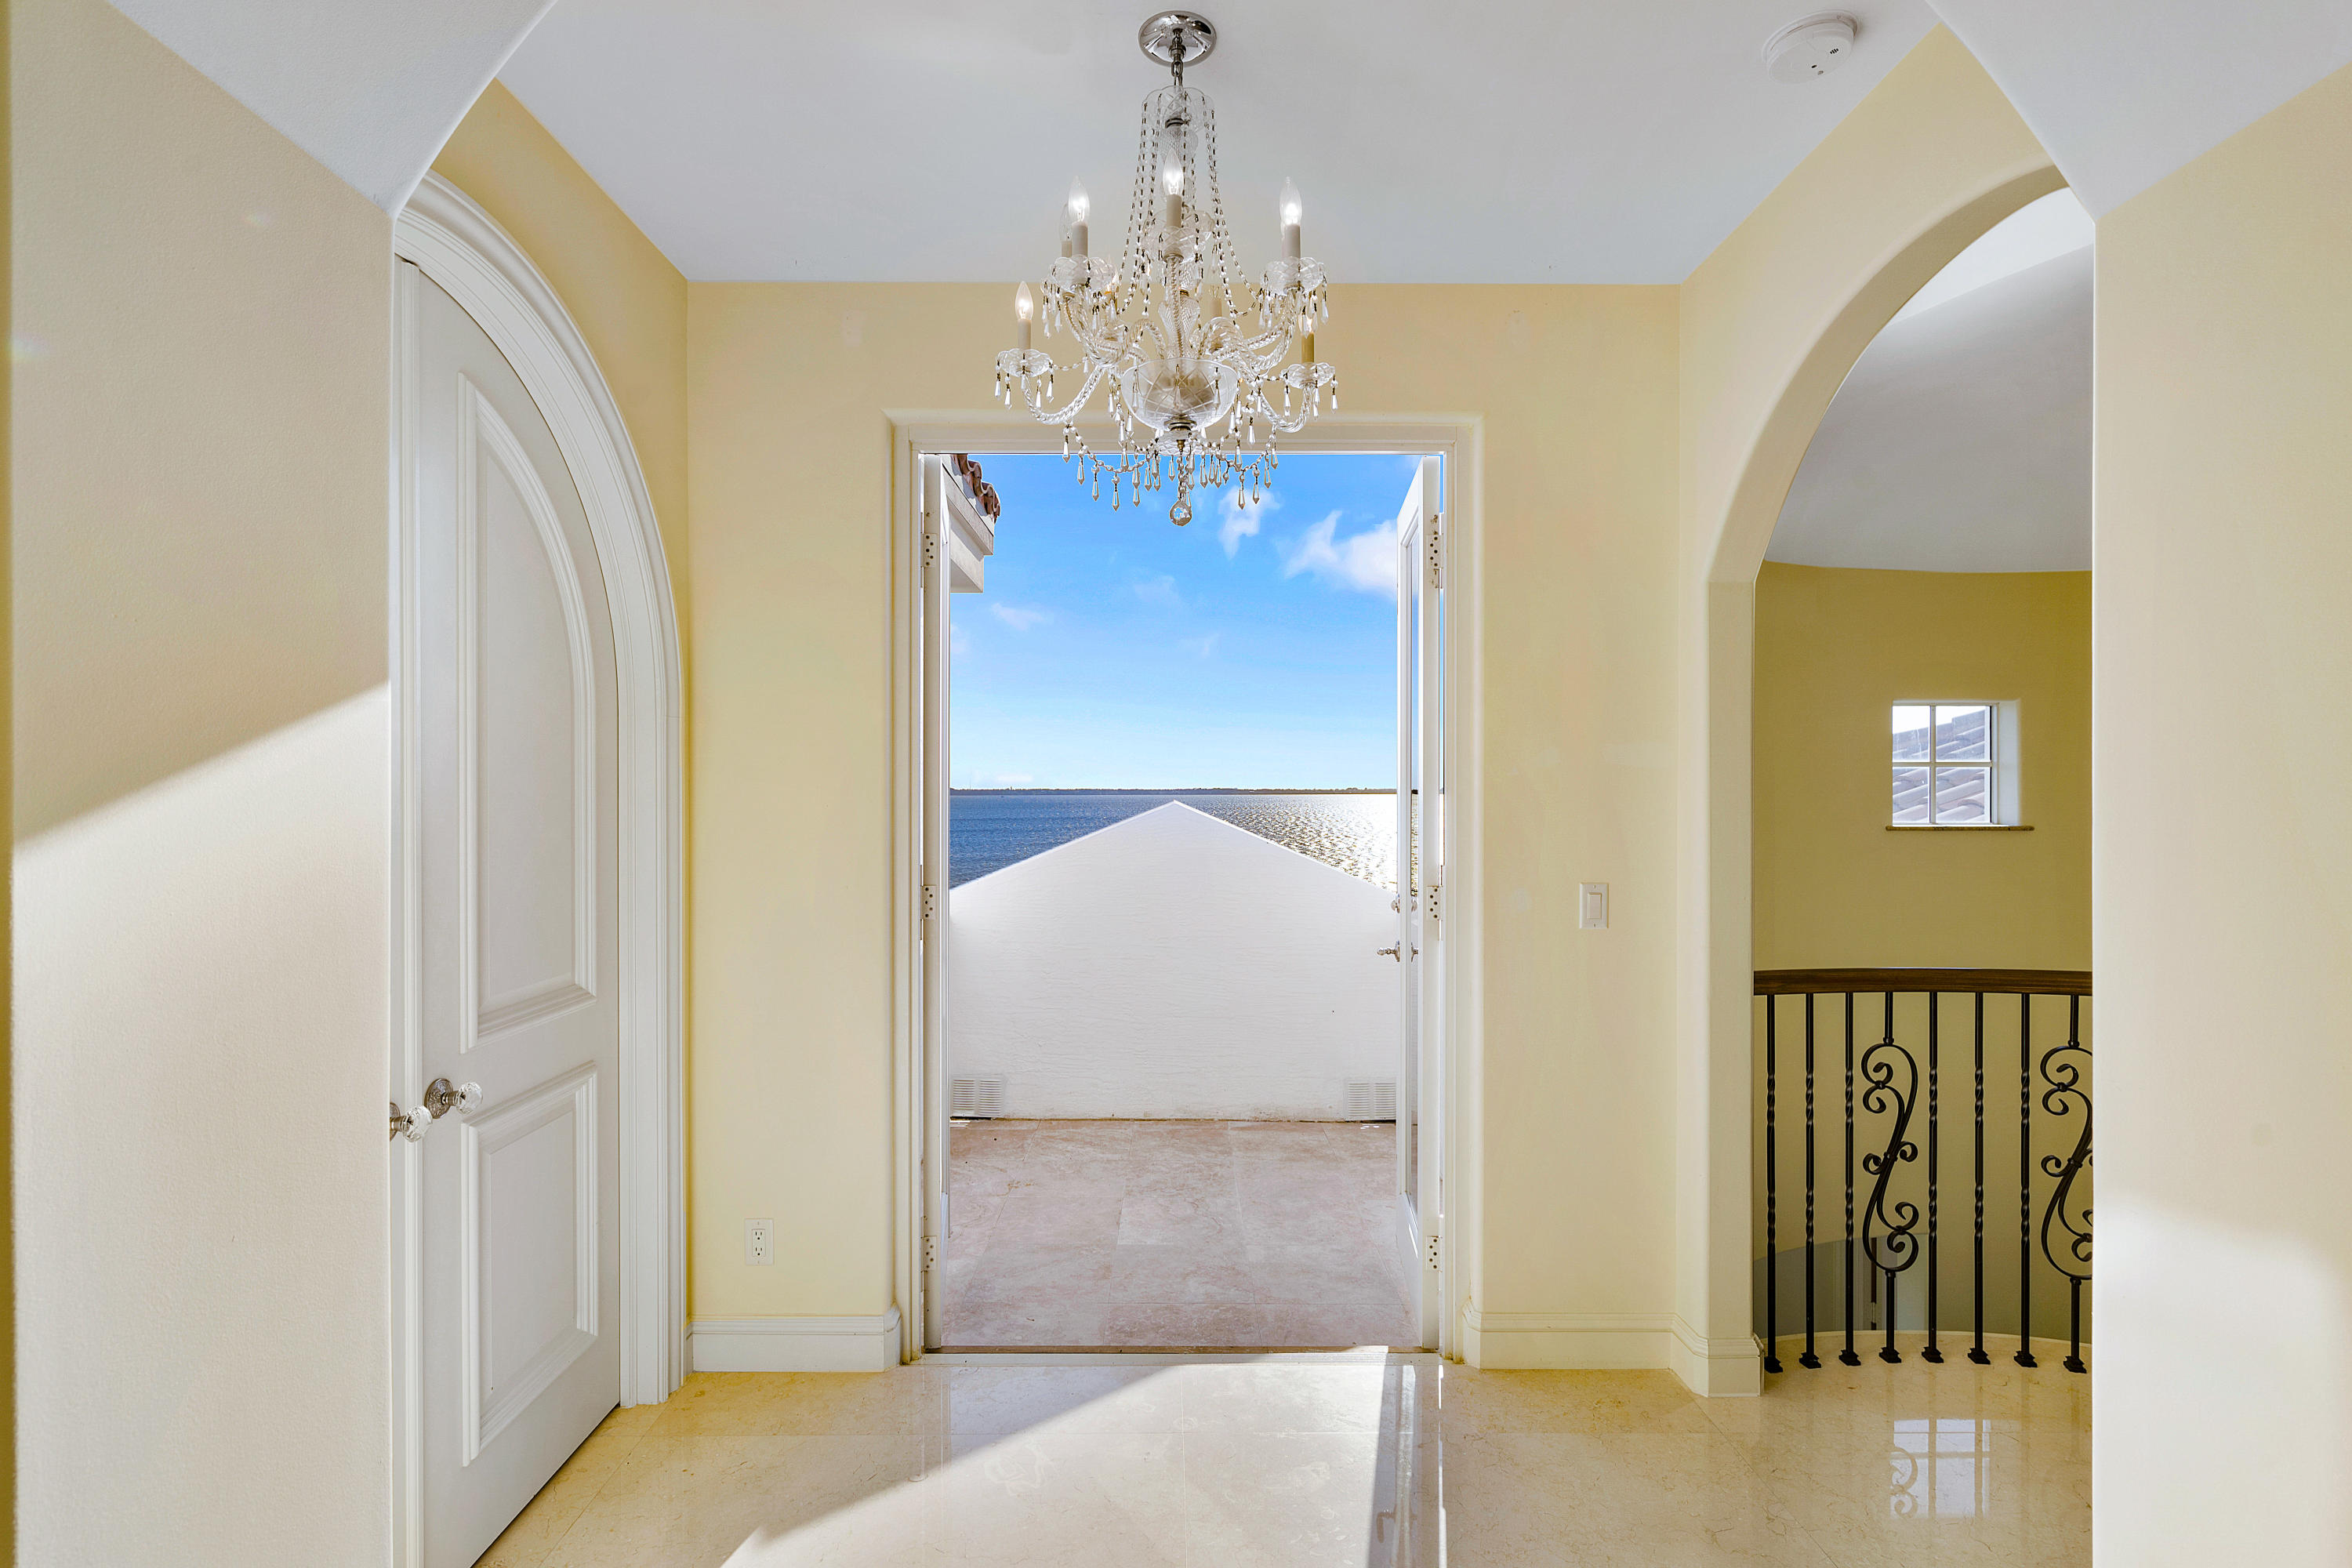 DIAMOND SANDS JENSEN BEACH REAL ESTATE